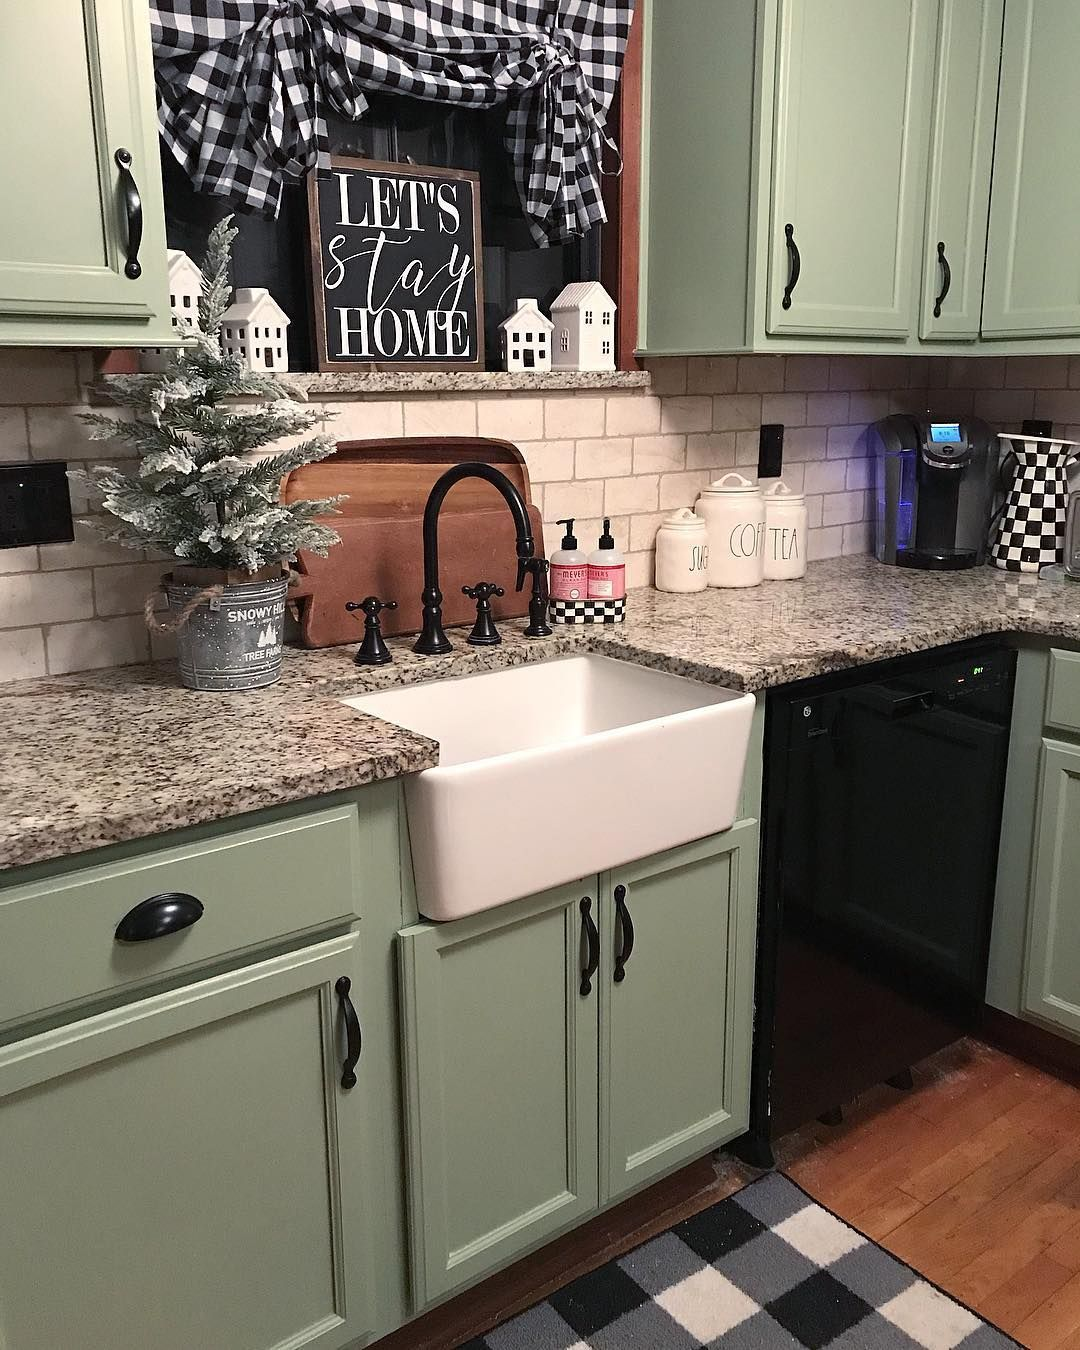 Heather On Instagram Christmas Came Down In The Kitchen Today And Left Me A Bit Confused This Kitchen H In 2020 New Kitchen Cabinets Kitchen Remodel Country Kitchen